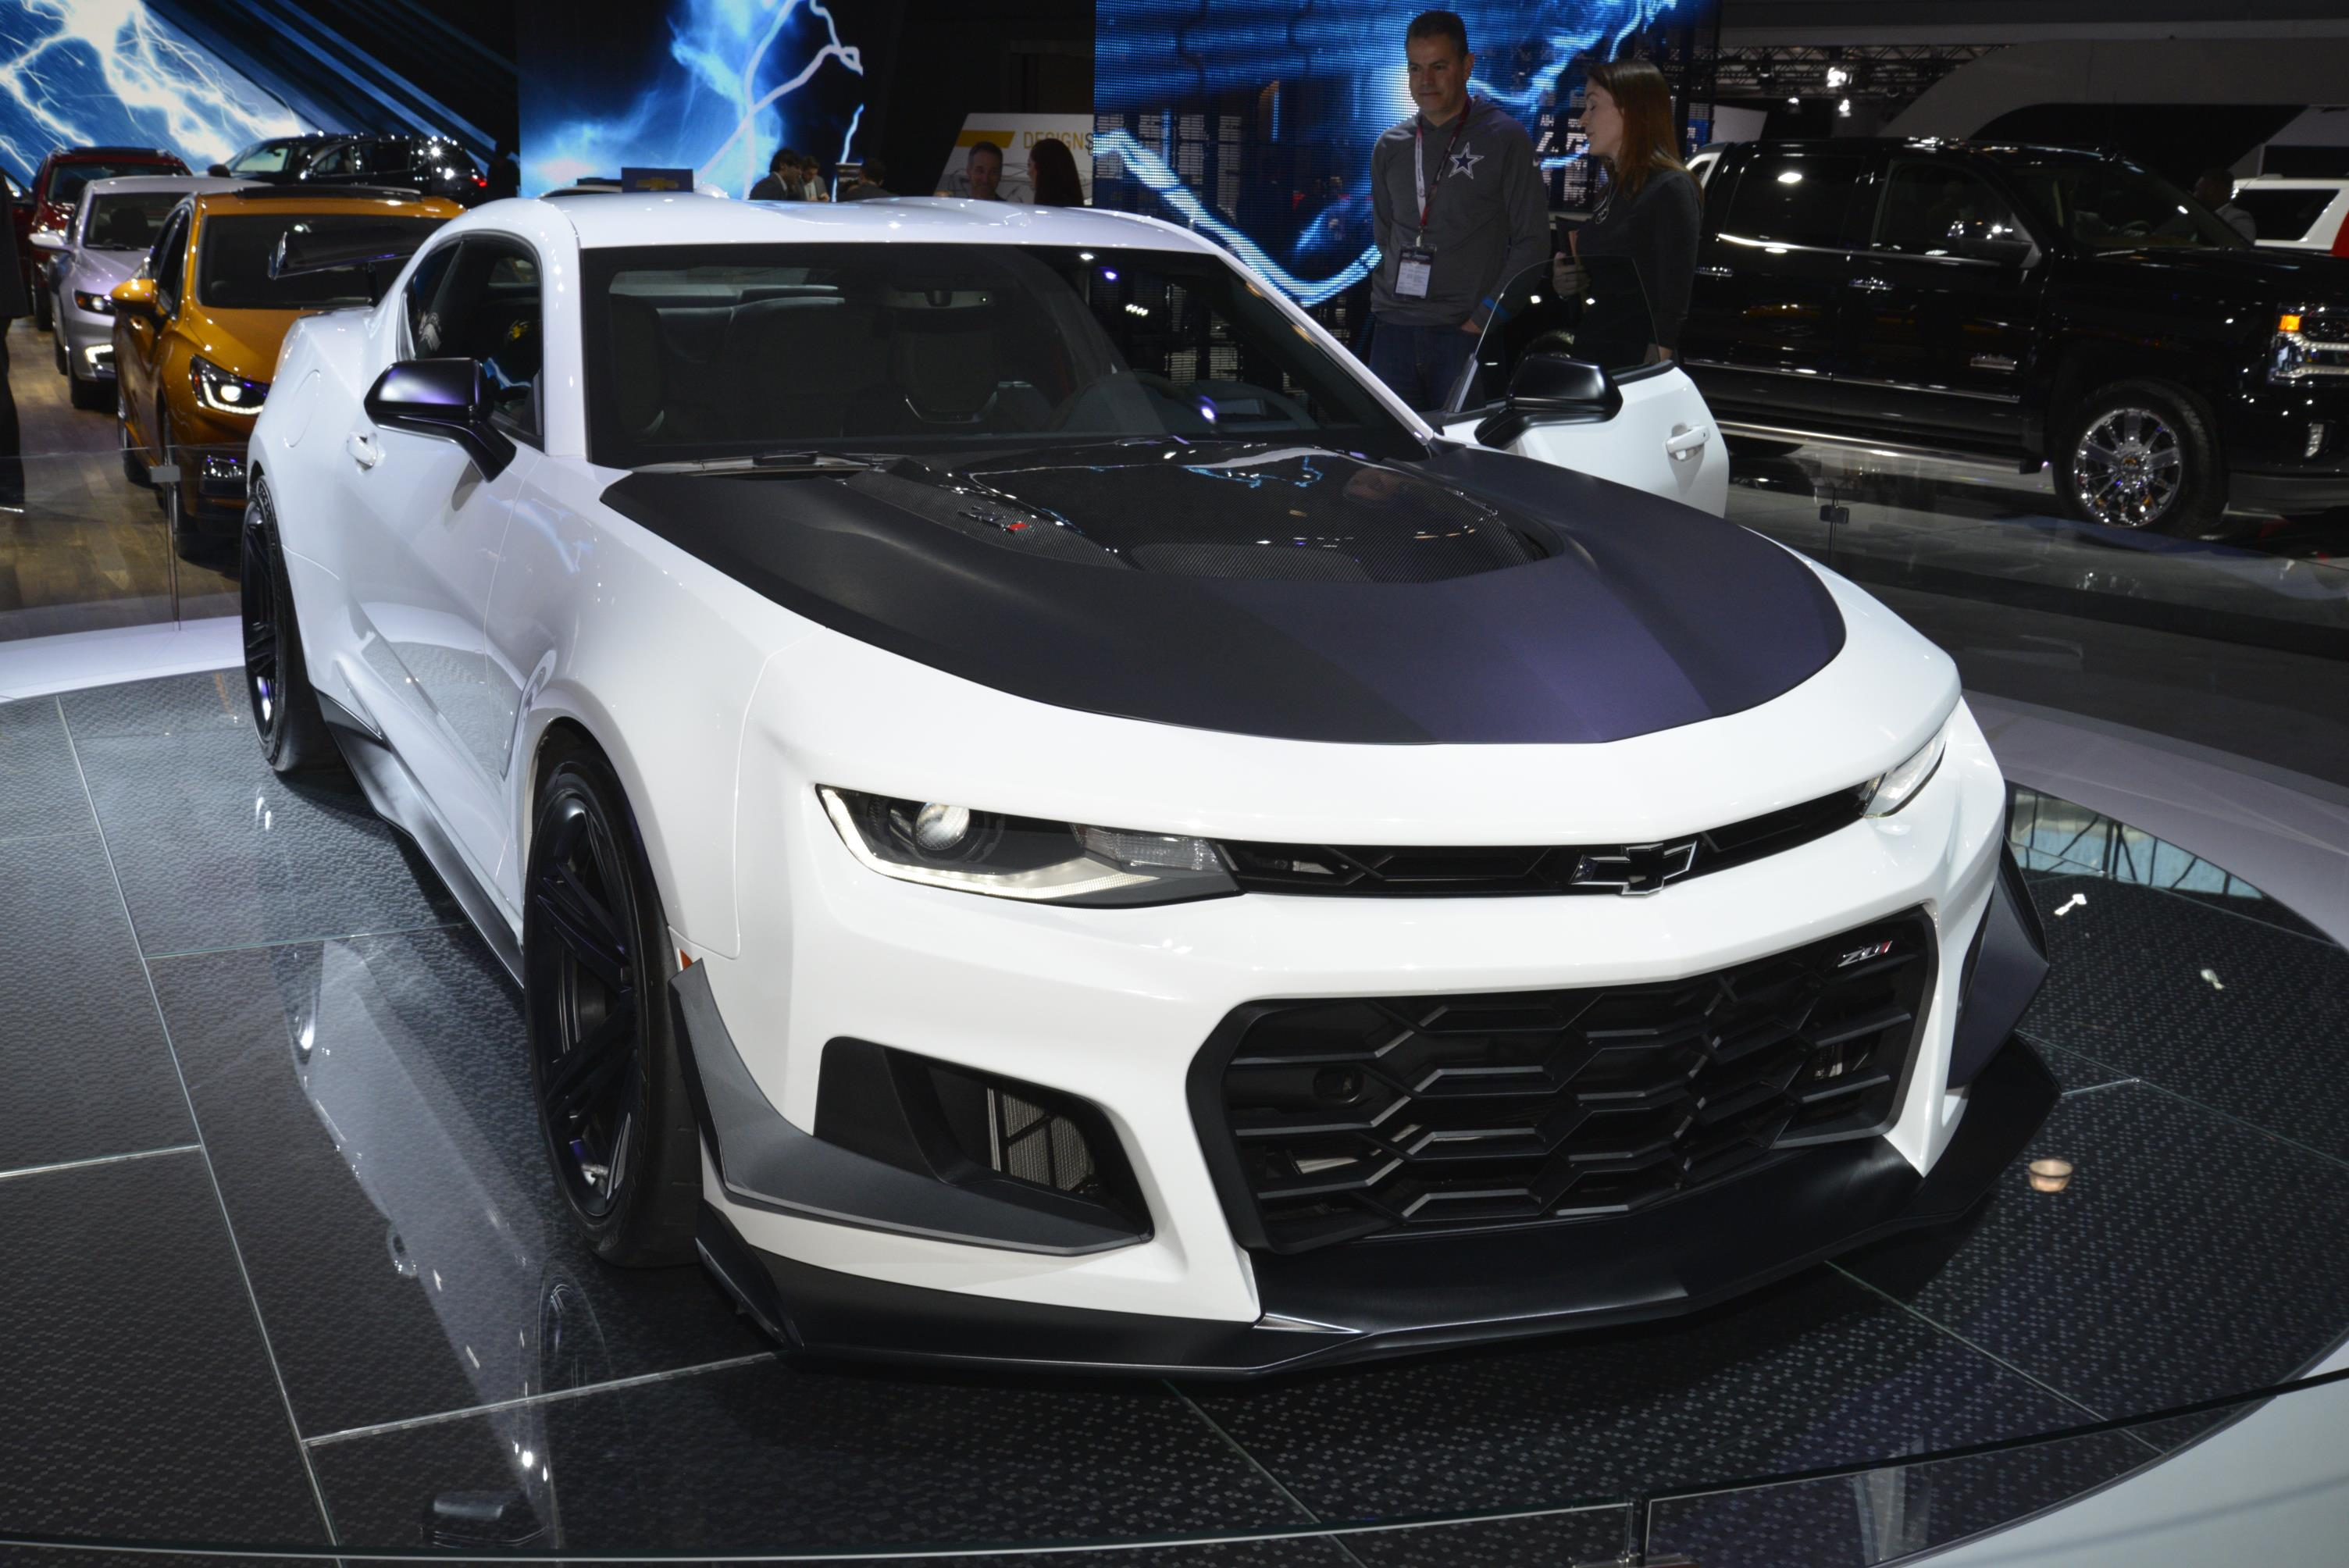 Chevrolet Camaro Zl1 1le Extreme Track Package Leads 2018 Lineup Myautoworld Com